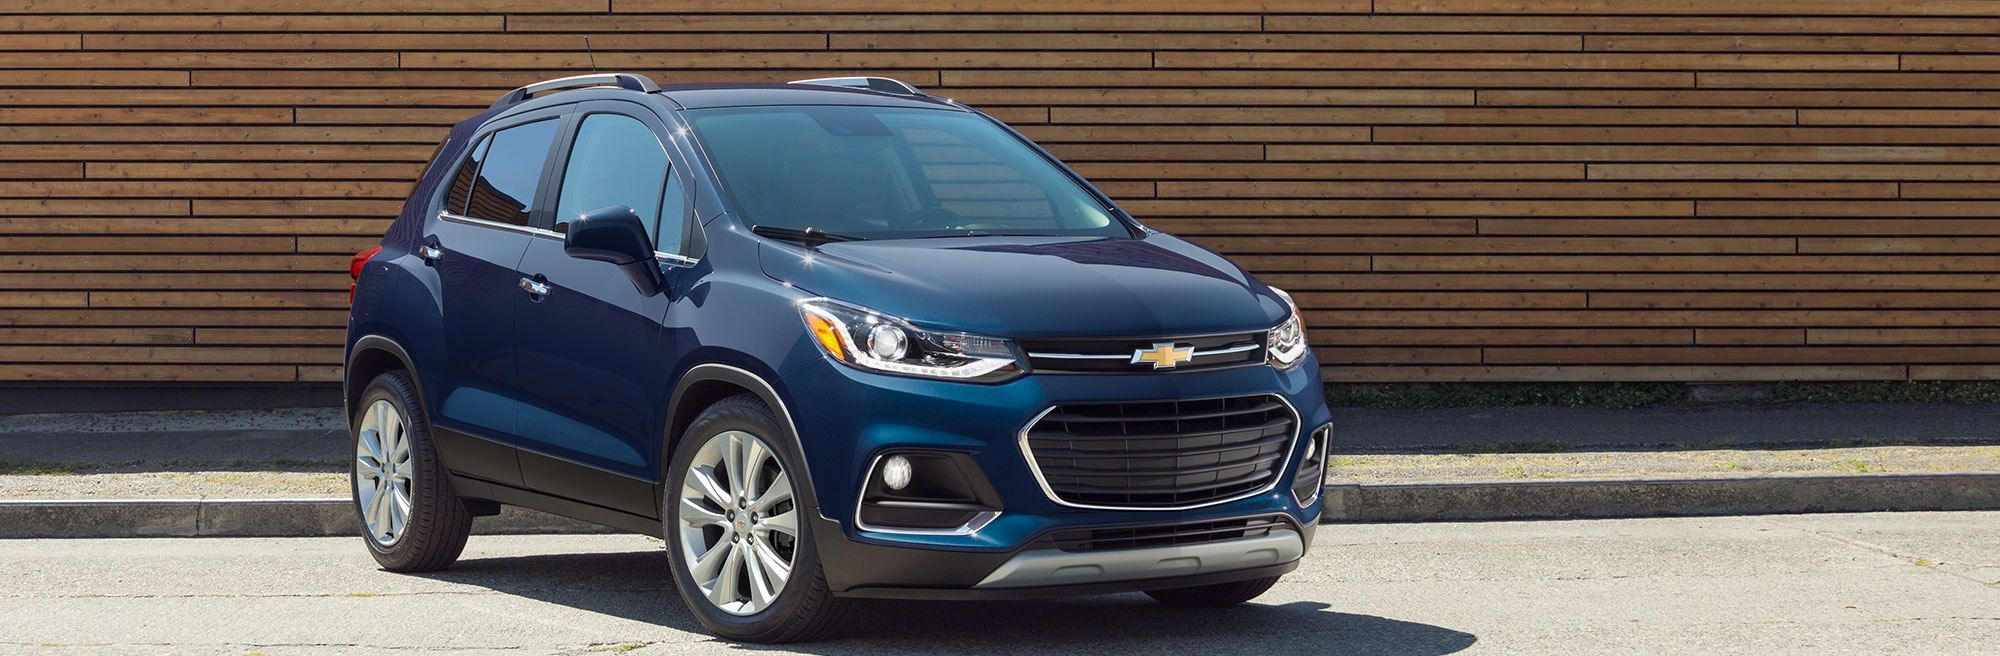 2019 Chevrolet Trax For Sale In Bartlesville Ok